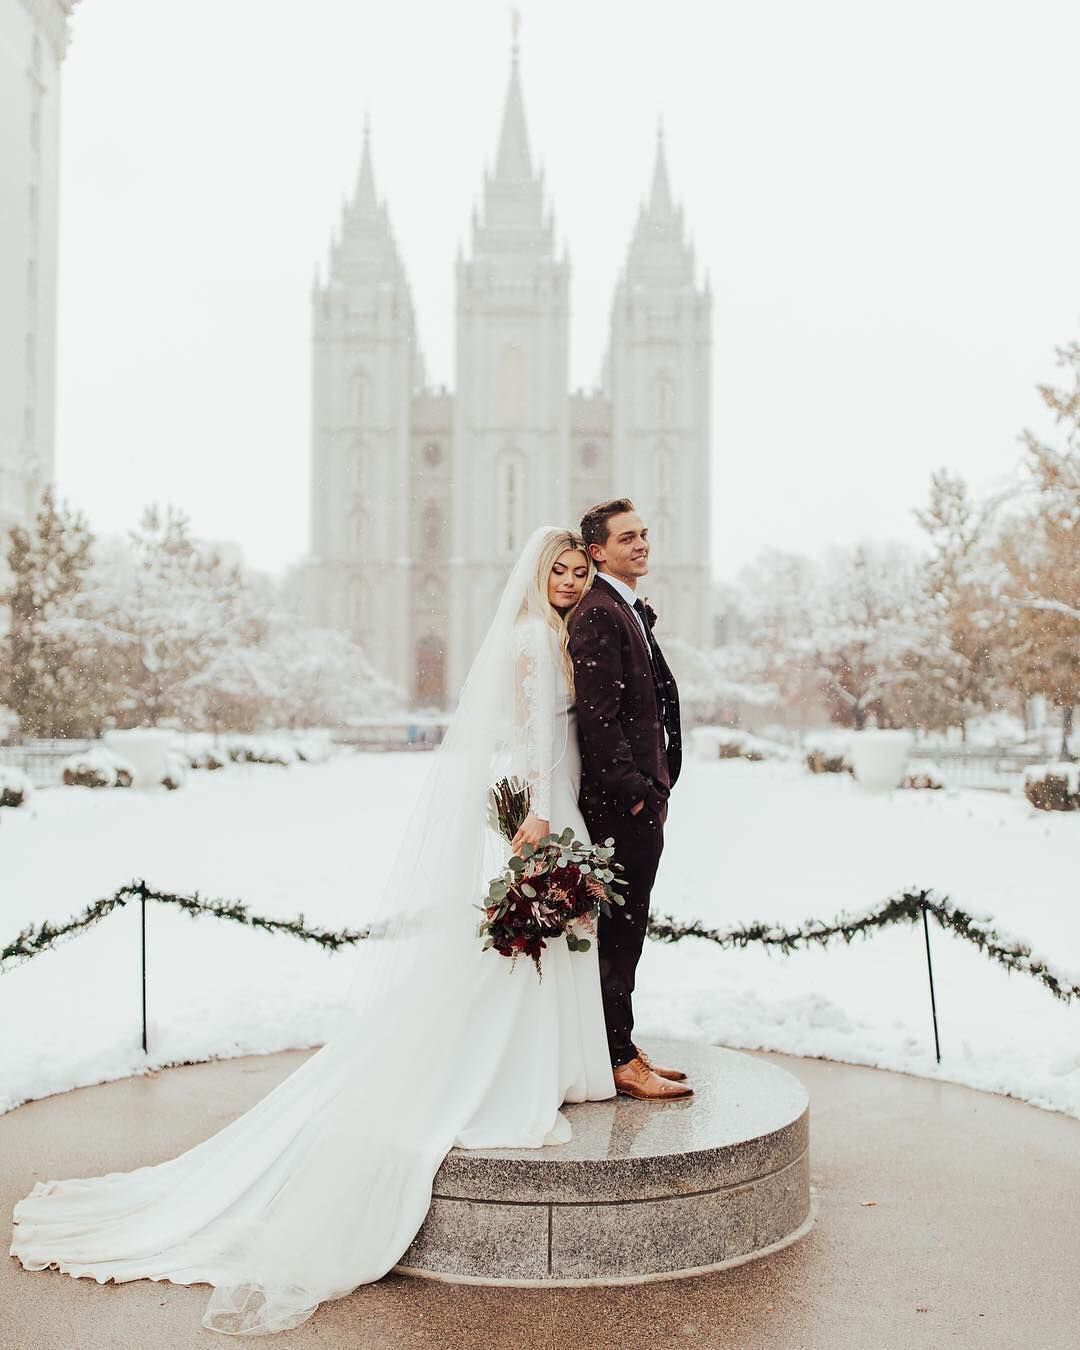 Love Is A Decision It Is A Judgment It Is A Promise If Love Were Only A Feeling Winter Wedding Wedding Photography Inspiration Winter Wedding Inspiration